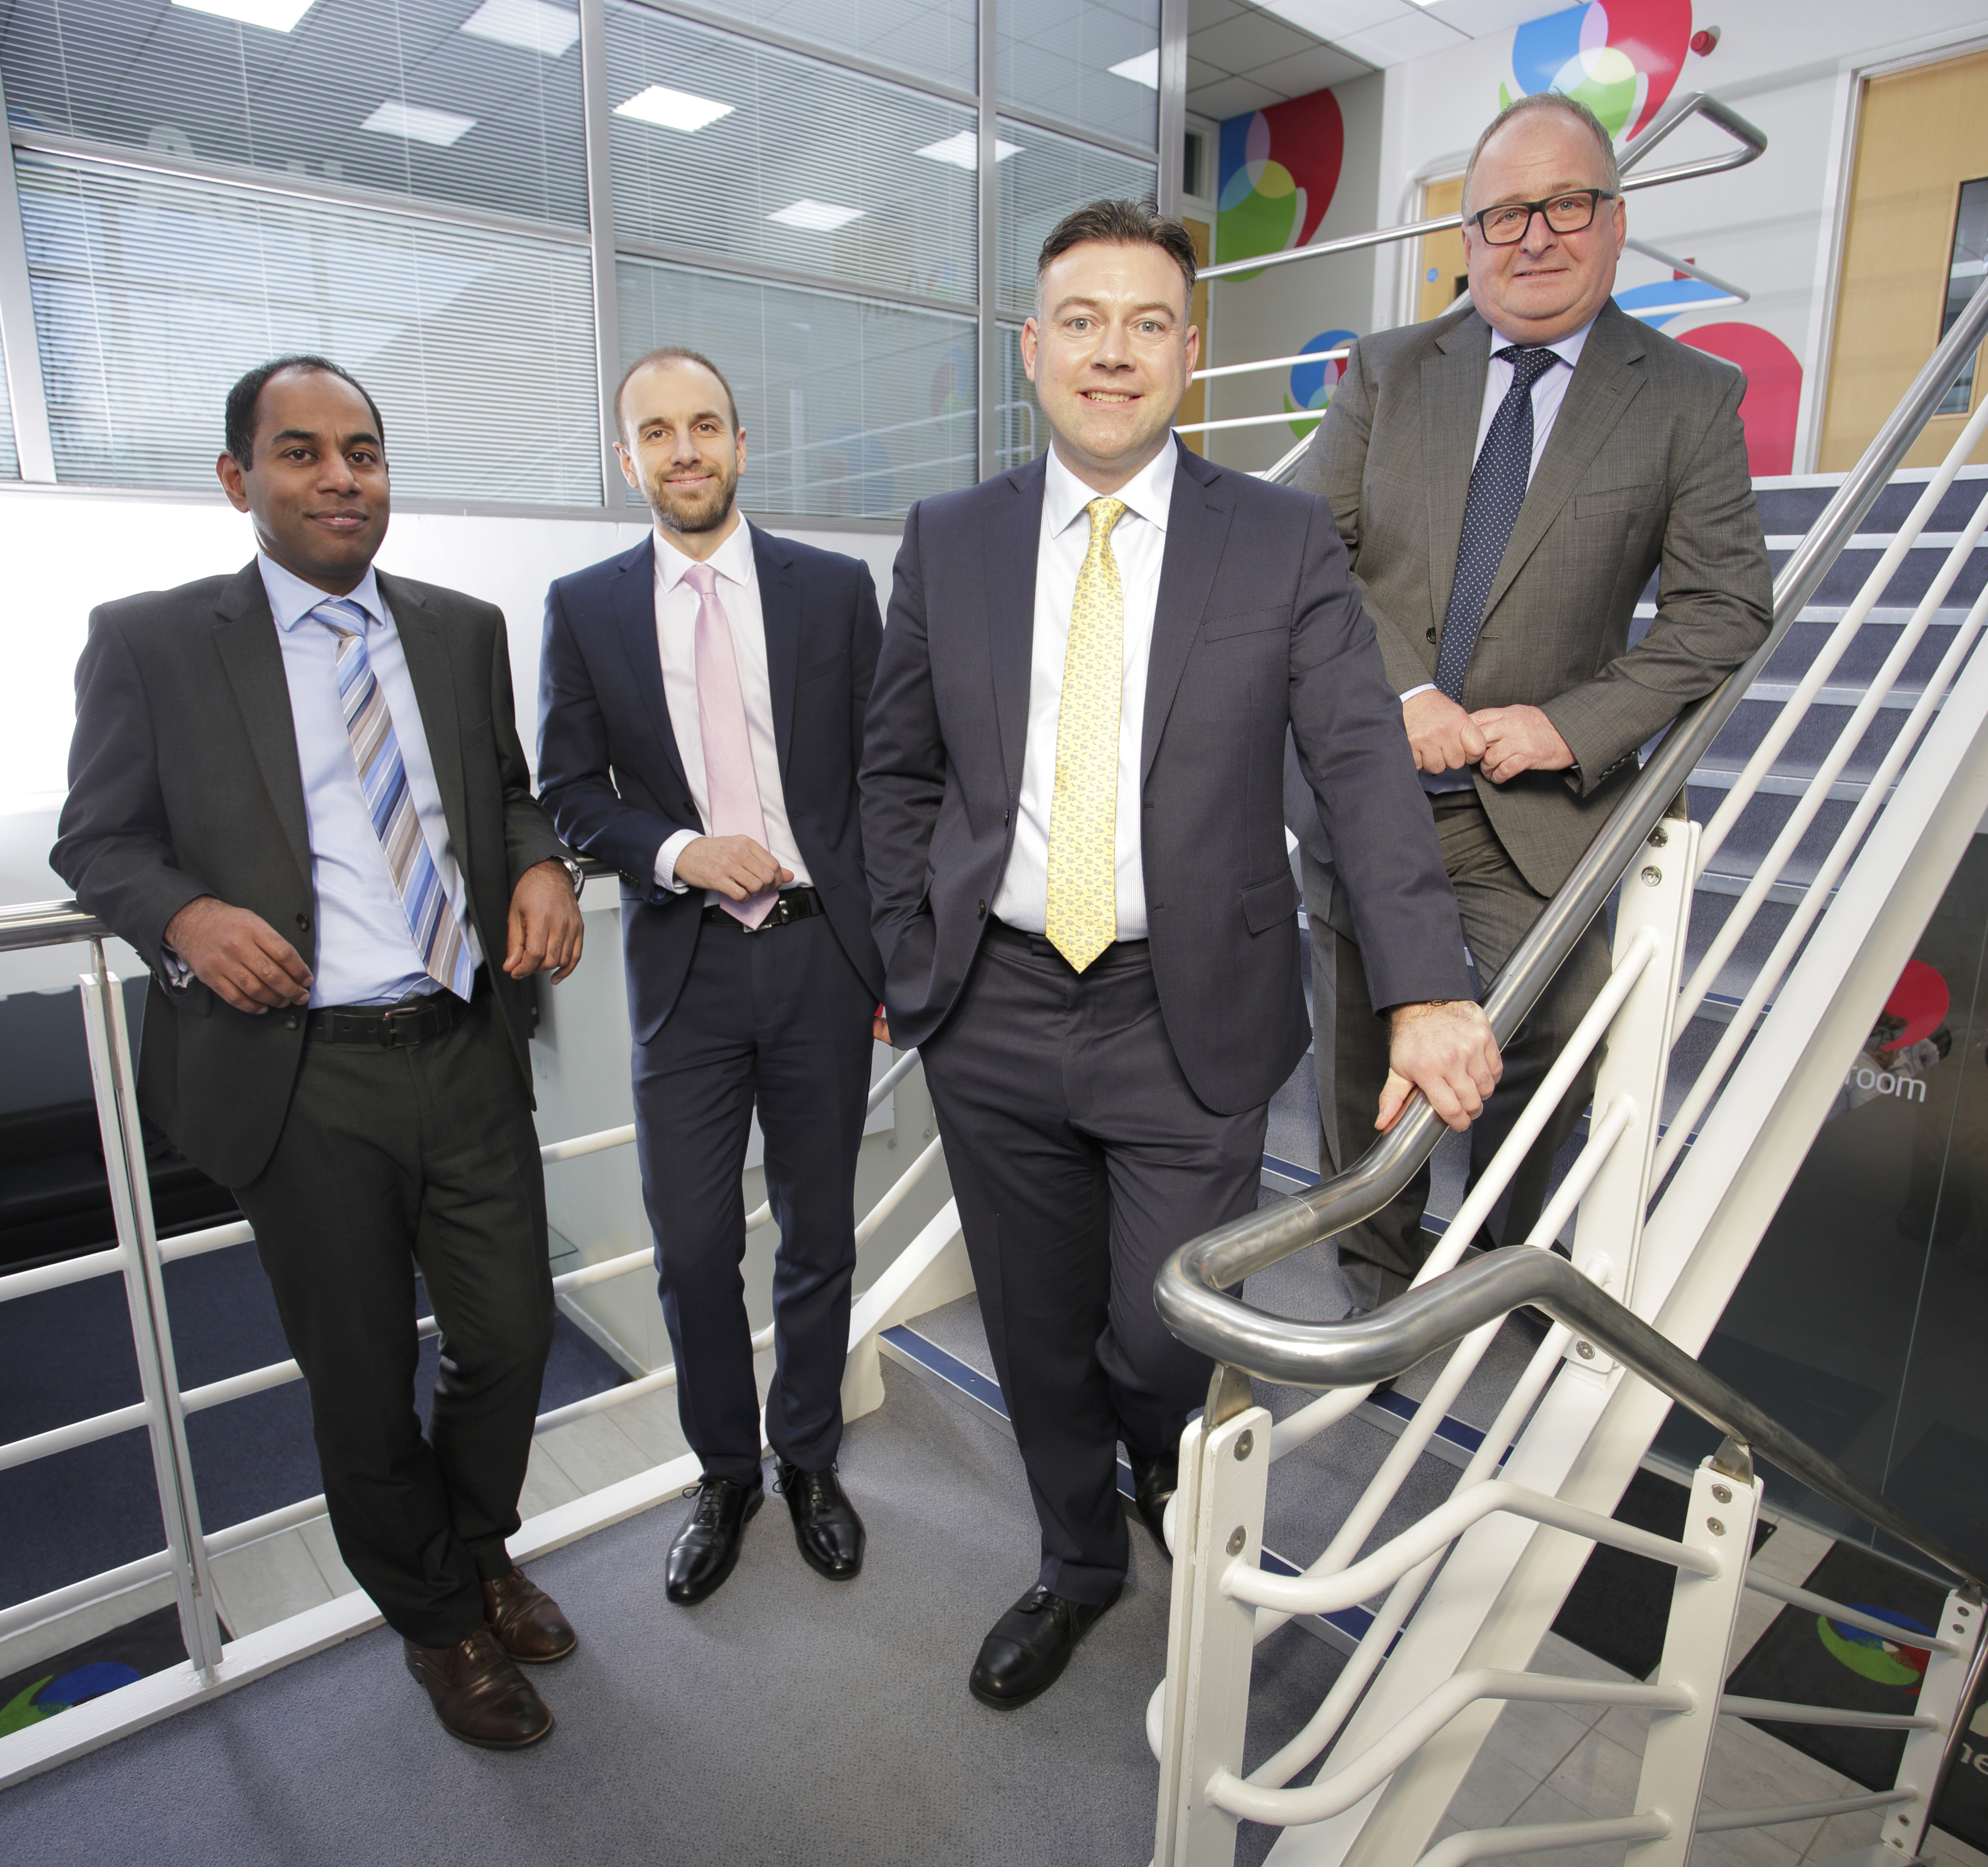 L-R: Kevin Maloney (Muckle, John Healey (UNW), Michael Vassallo (FW Capital) and Ian Gillespie (Activ)